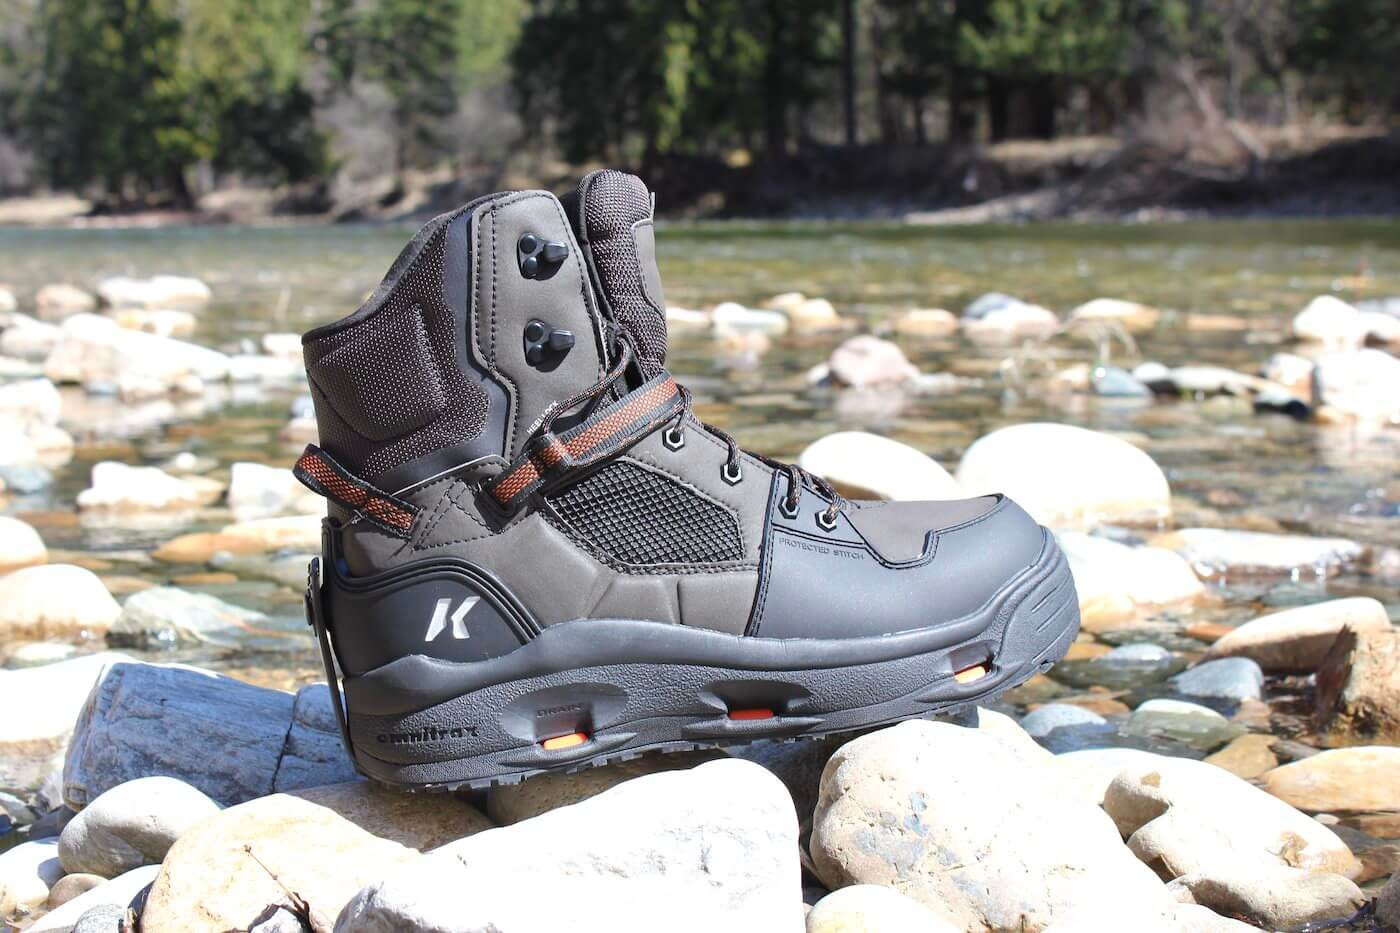 This review photo shows the Korkers Terror Ridge wading boots on rocks near a river.